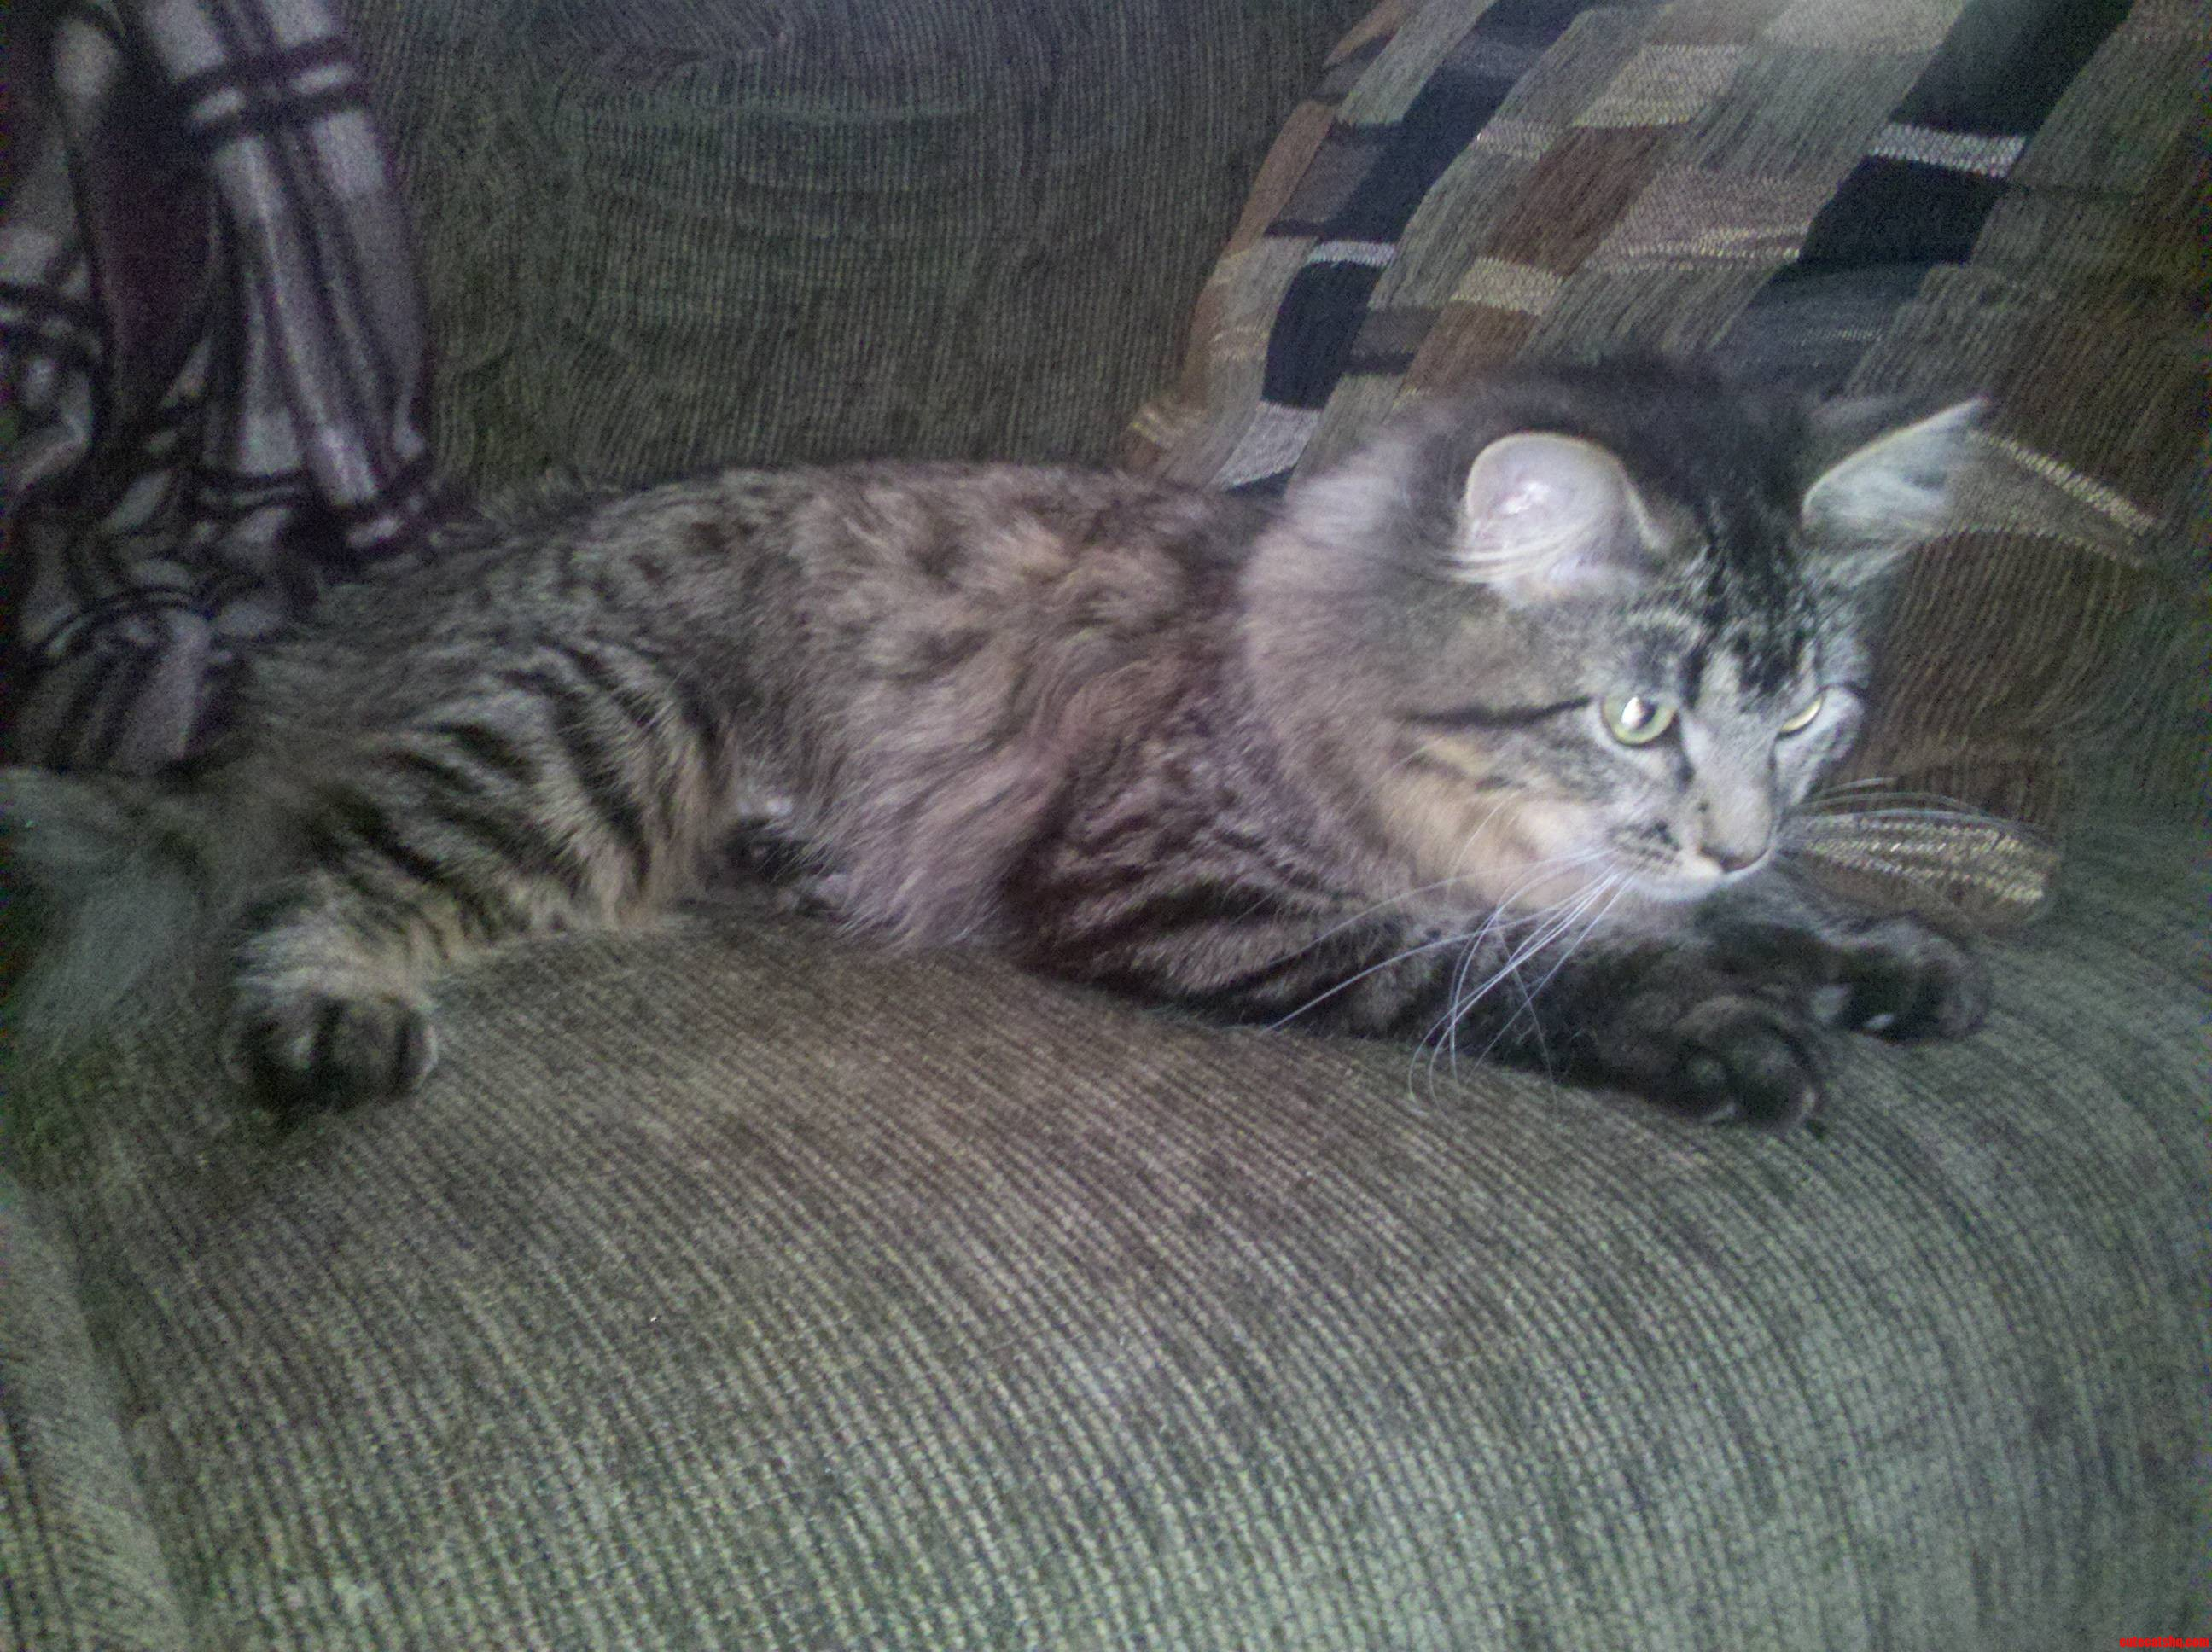 Our New Maine Coon Cat Blending In With The Couch